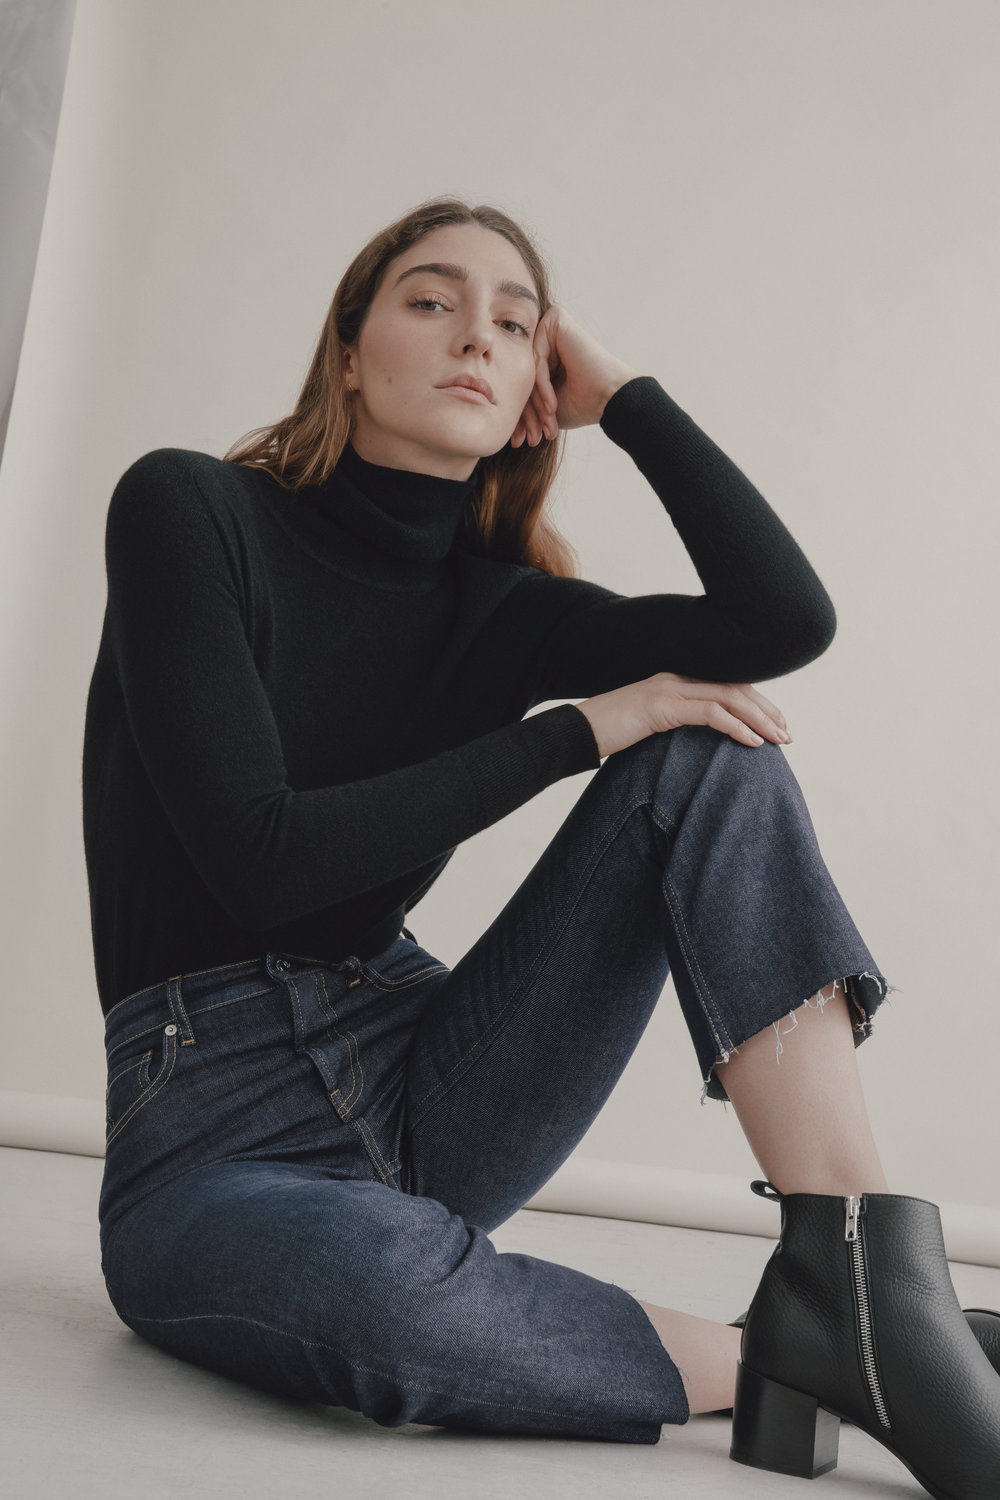 20180123_DBaum_Everlane_Editorial_Kick-Crop_45343.jpg